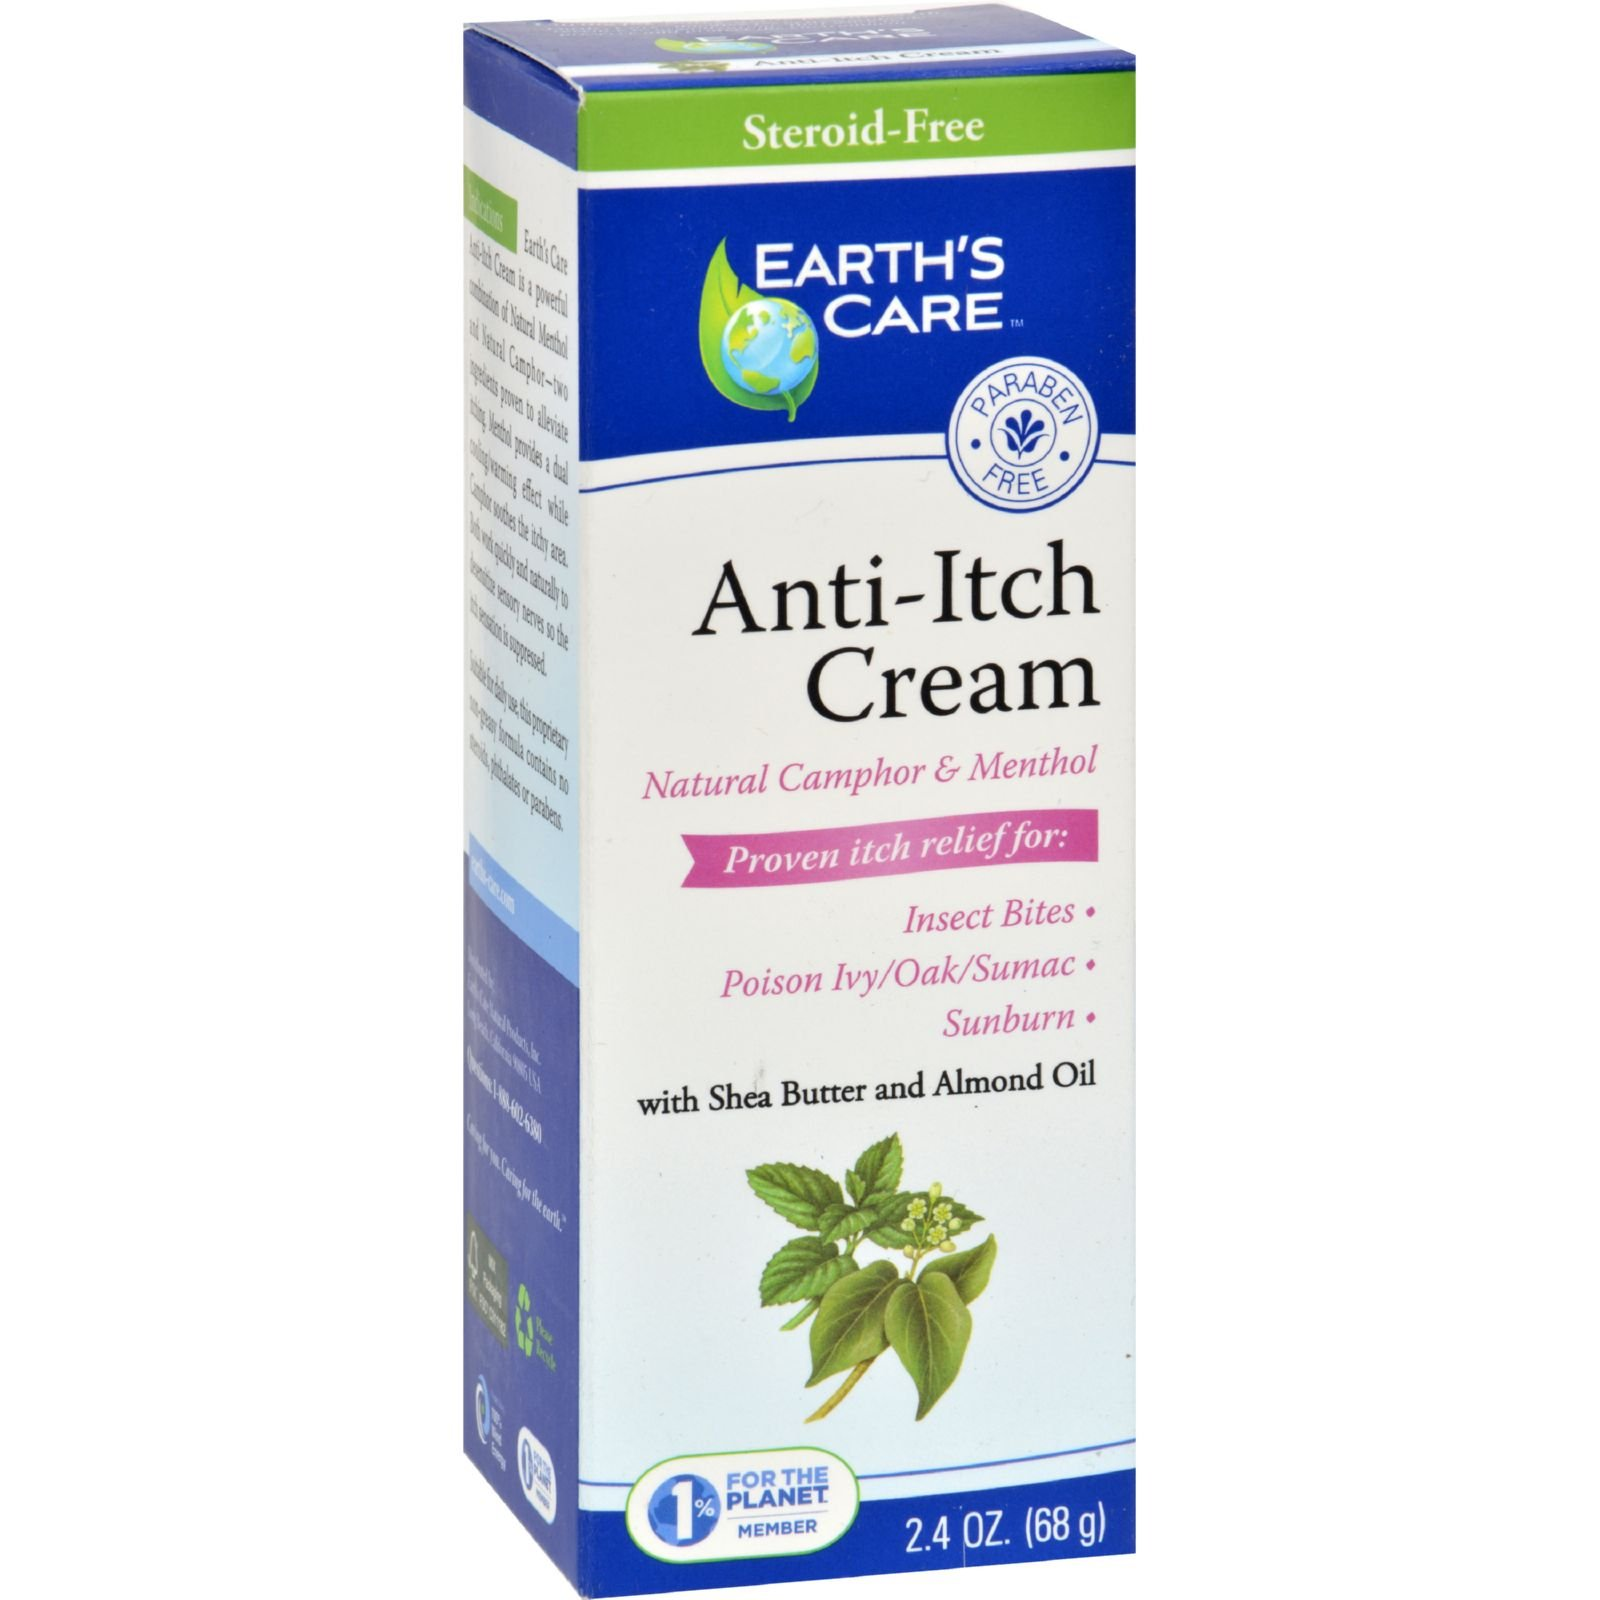 Earths Care Anti-Itch Cream - 2.4 oz (Pack of 2)